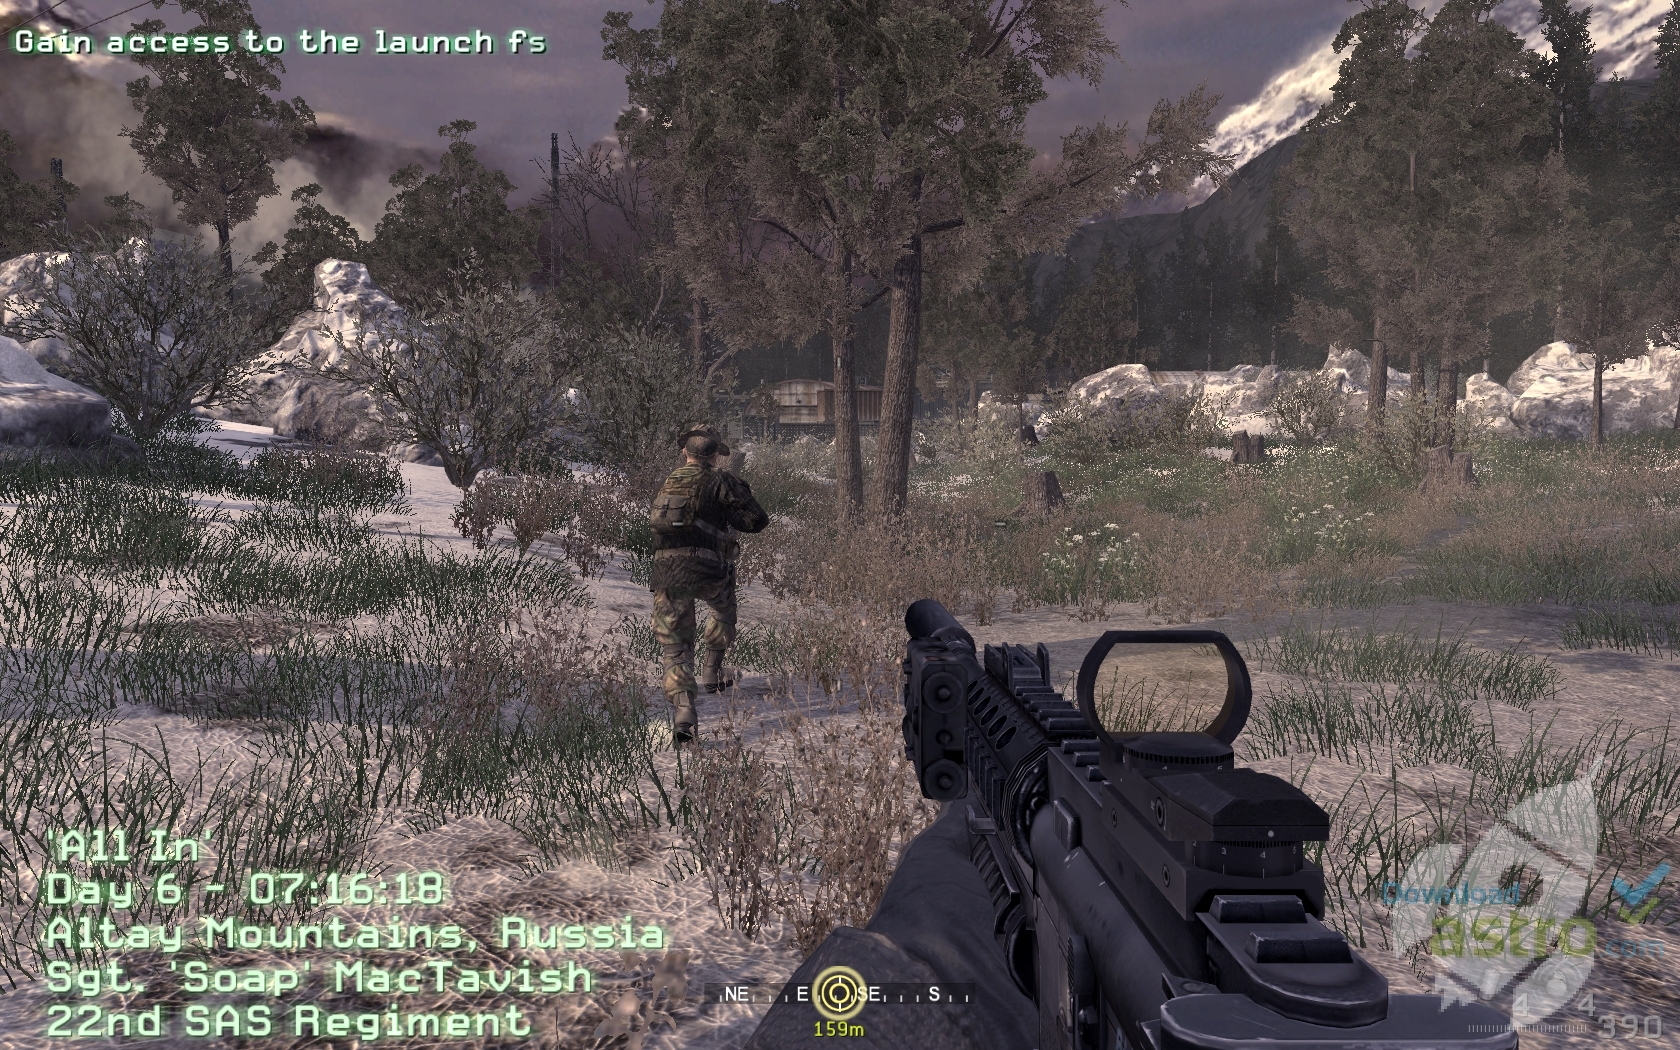 call of duty 4 download free full version pc windows 10